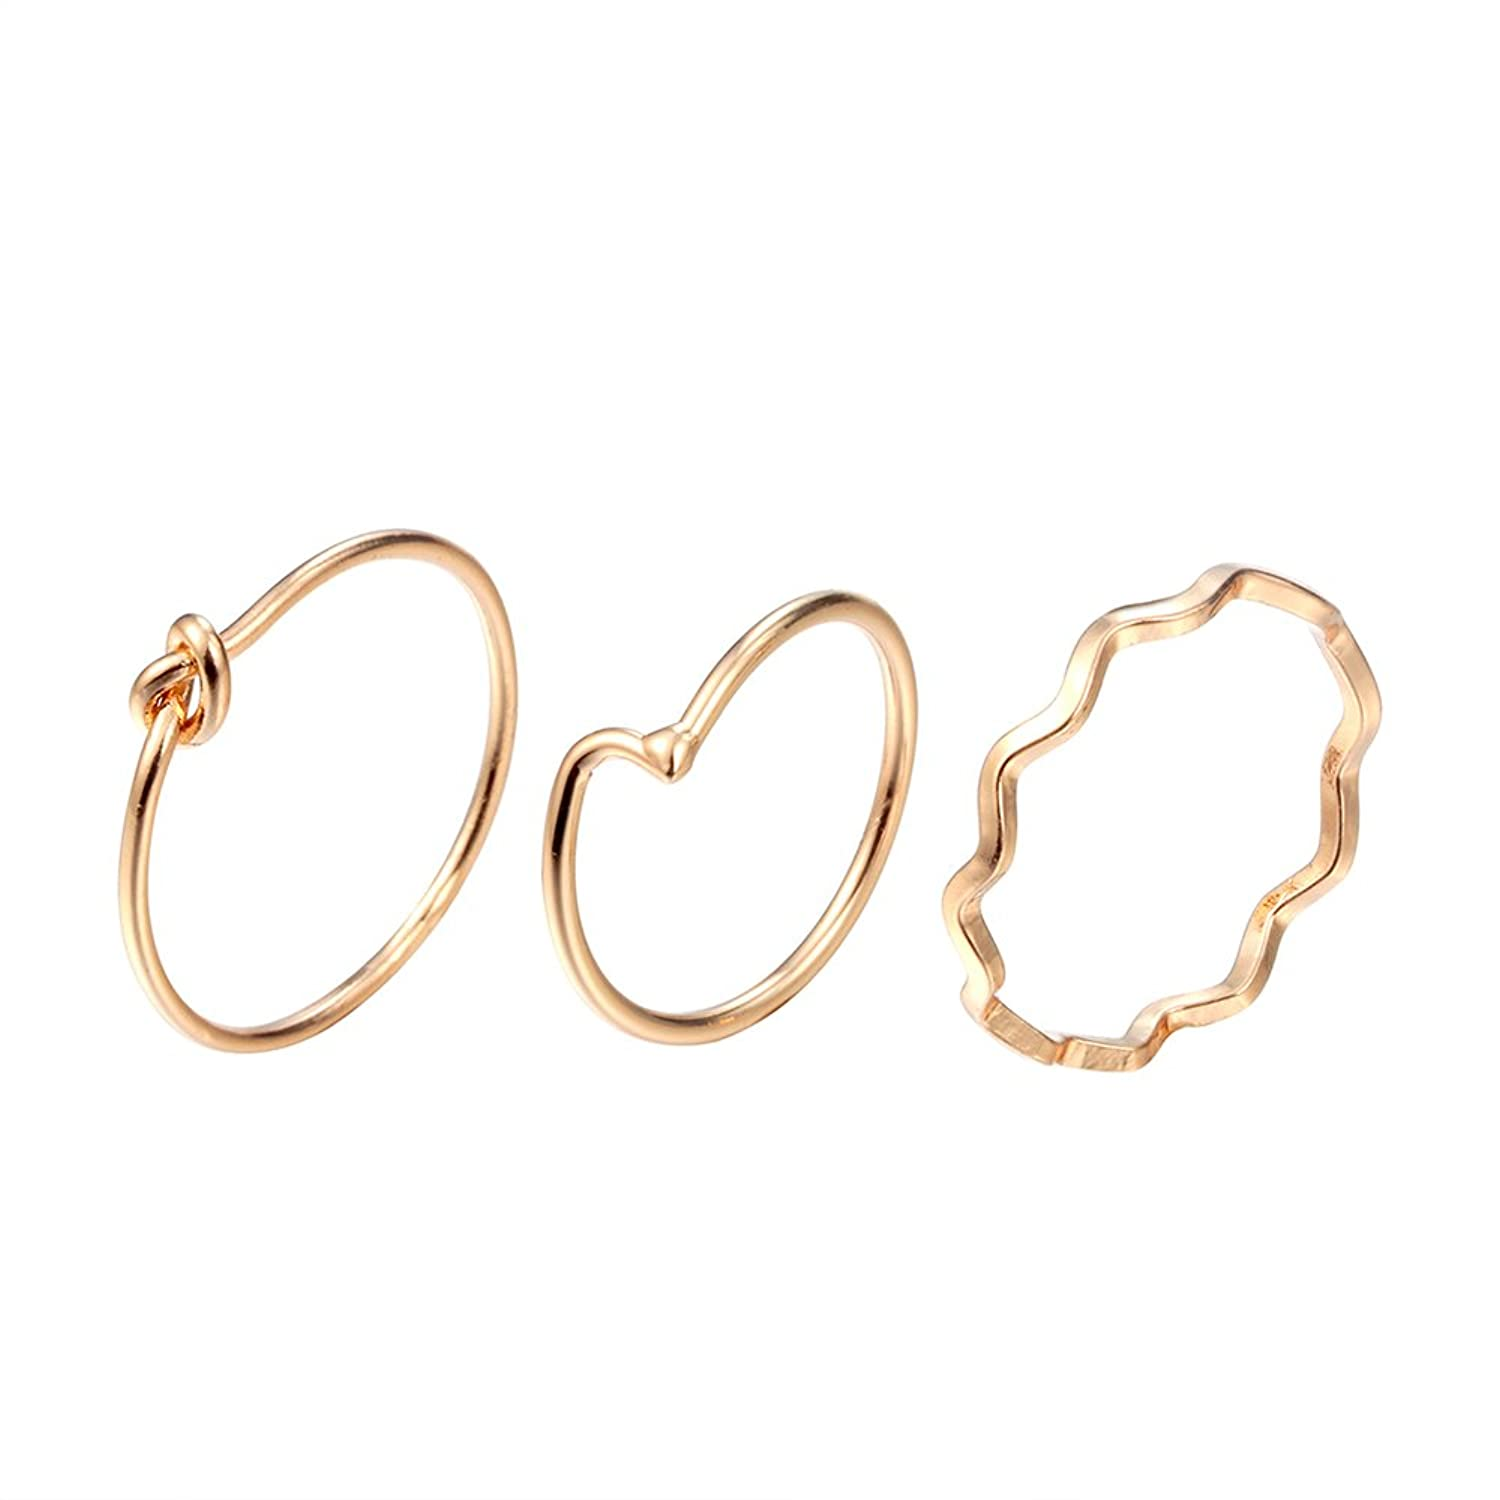 chengxun 3 Pcs/set Fashion Love Knot Gold Rings Thin Chain Above Knuckle Band Midi Finger Jewelry